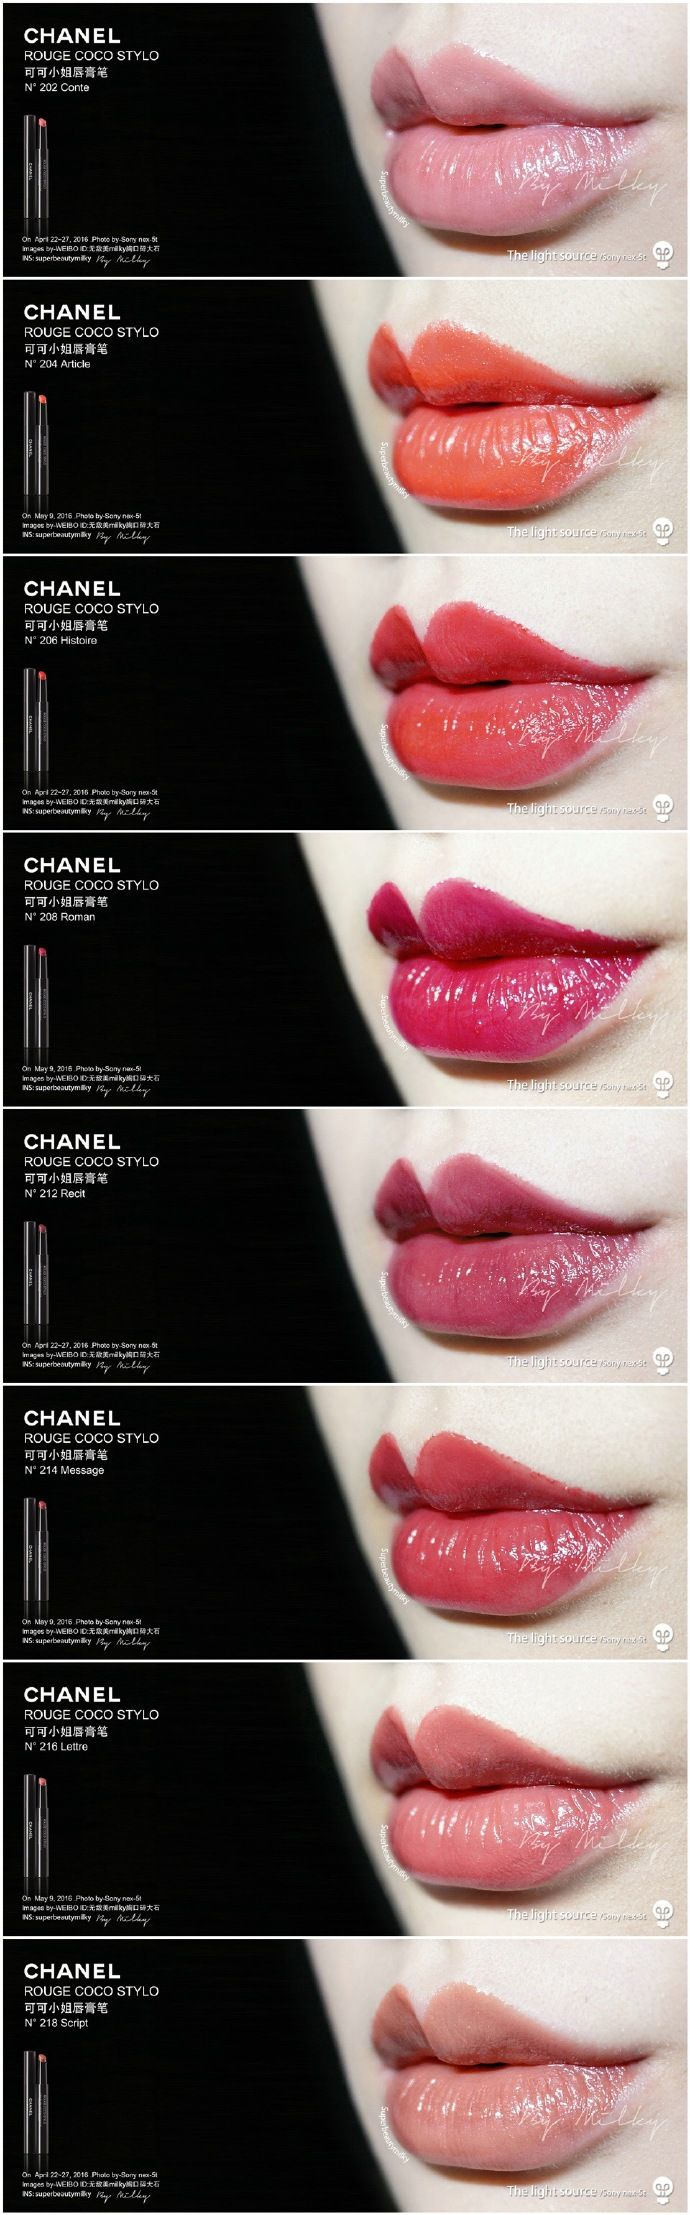 CHANEL ROUGE COCO STYLO 202/204/206/208/212/214/216/218